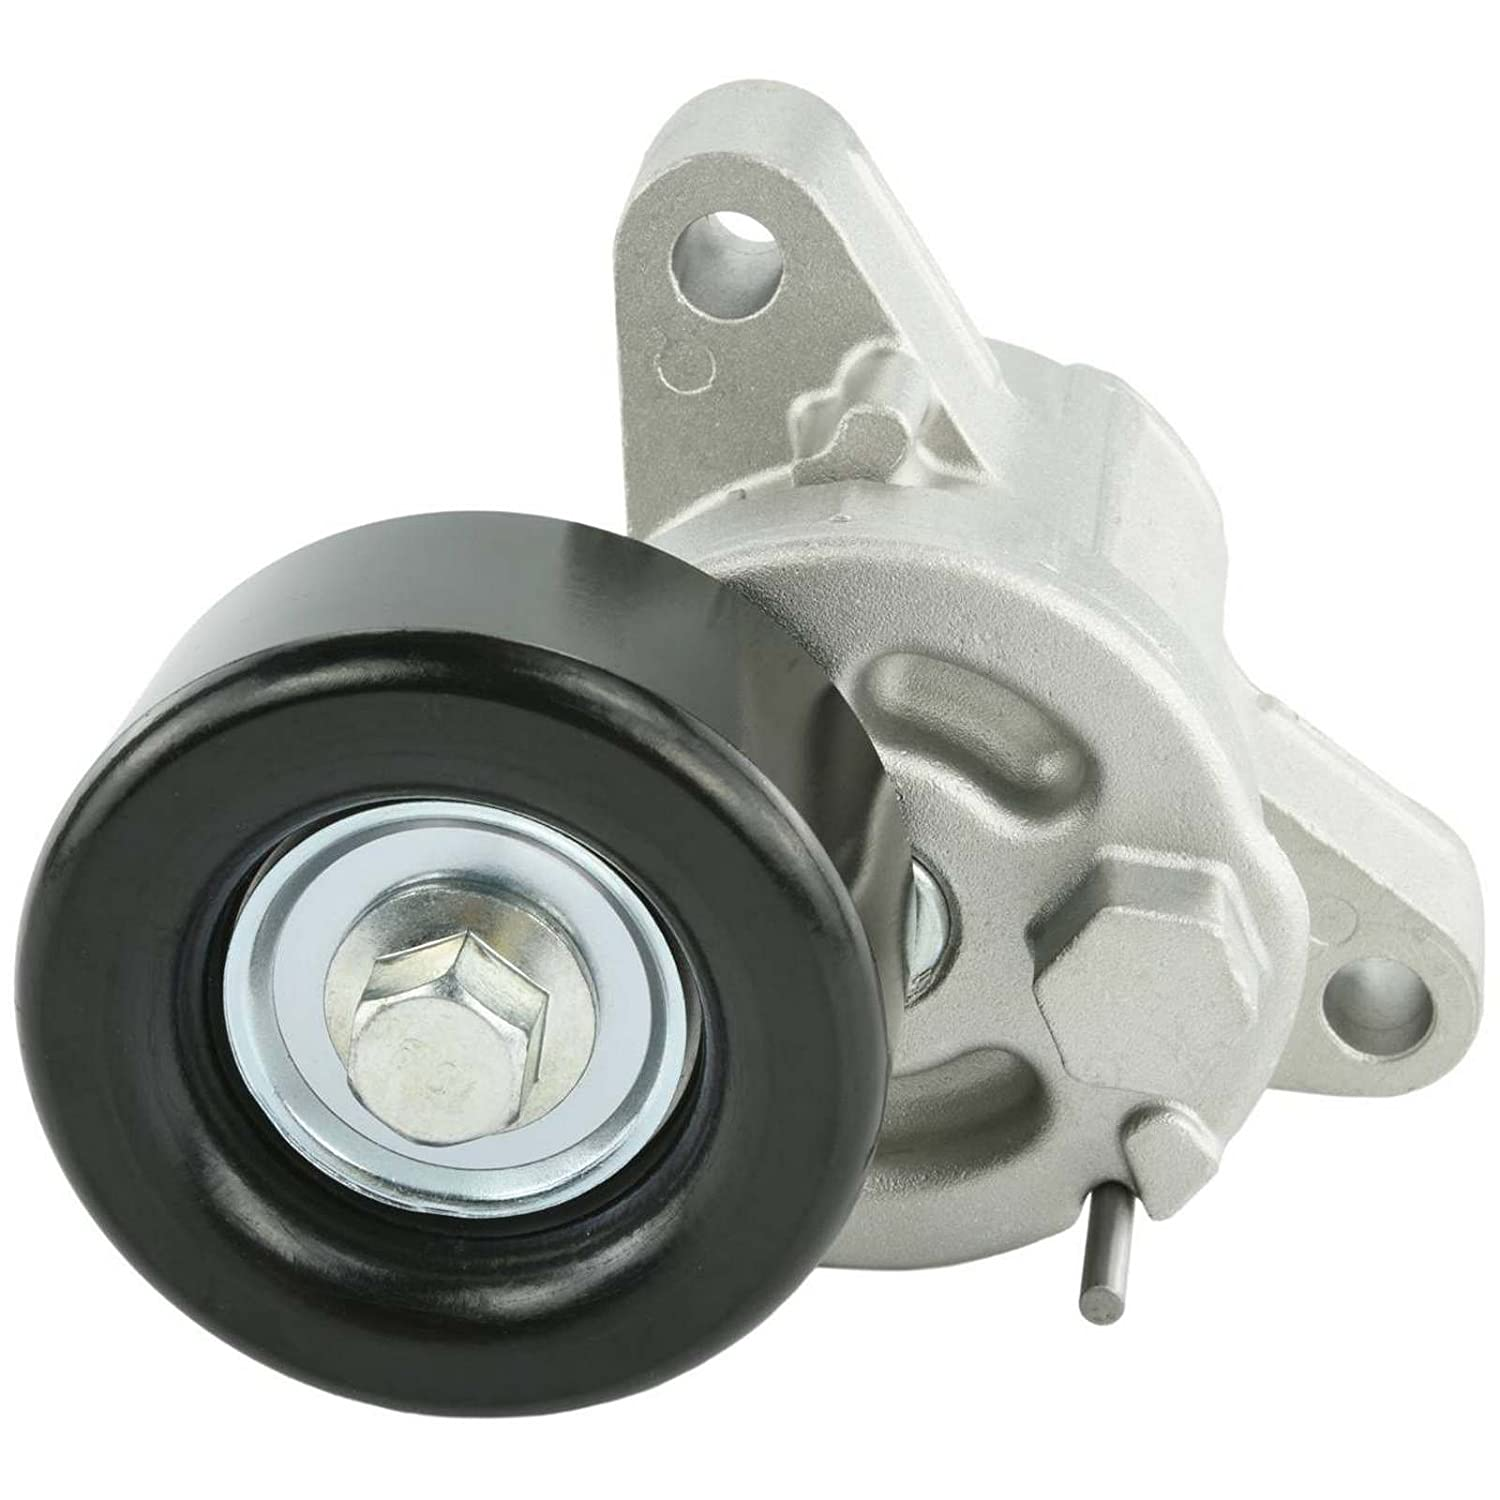 TENSIONER ASSEMBLY. Febest: 0490-CX6A